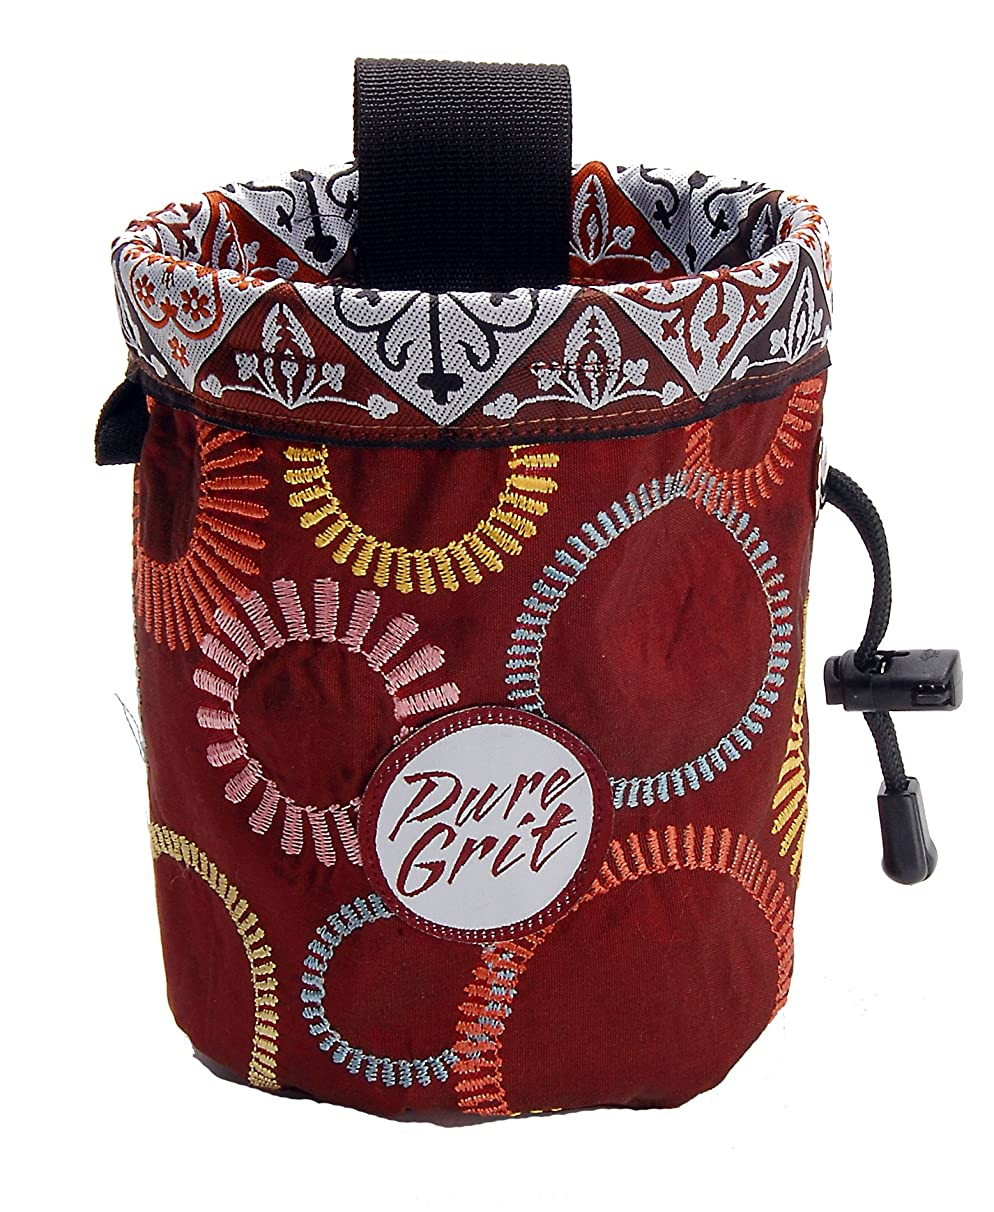 Pure Grit Burgundy Wheels 2 Chalk Bag (USA made) with Belt